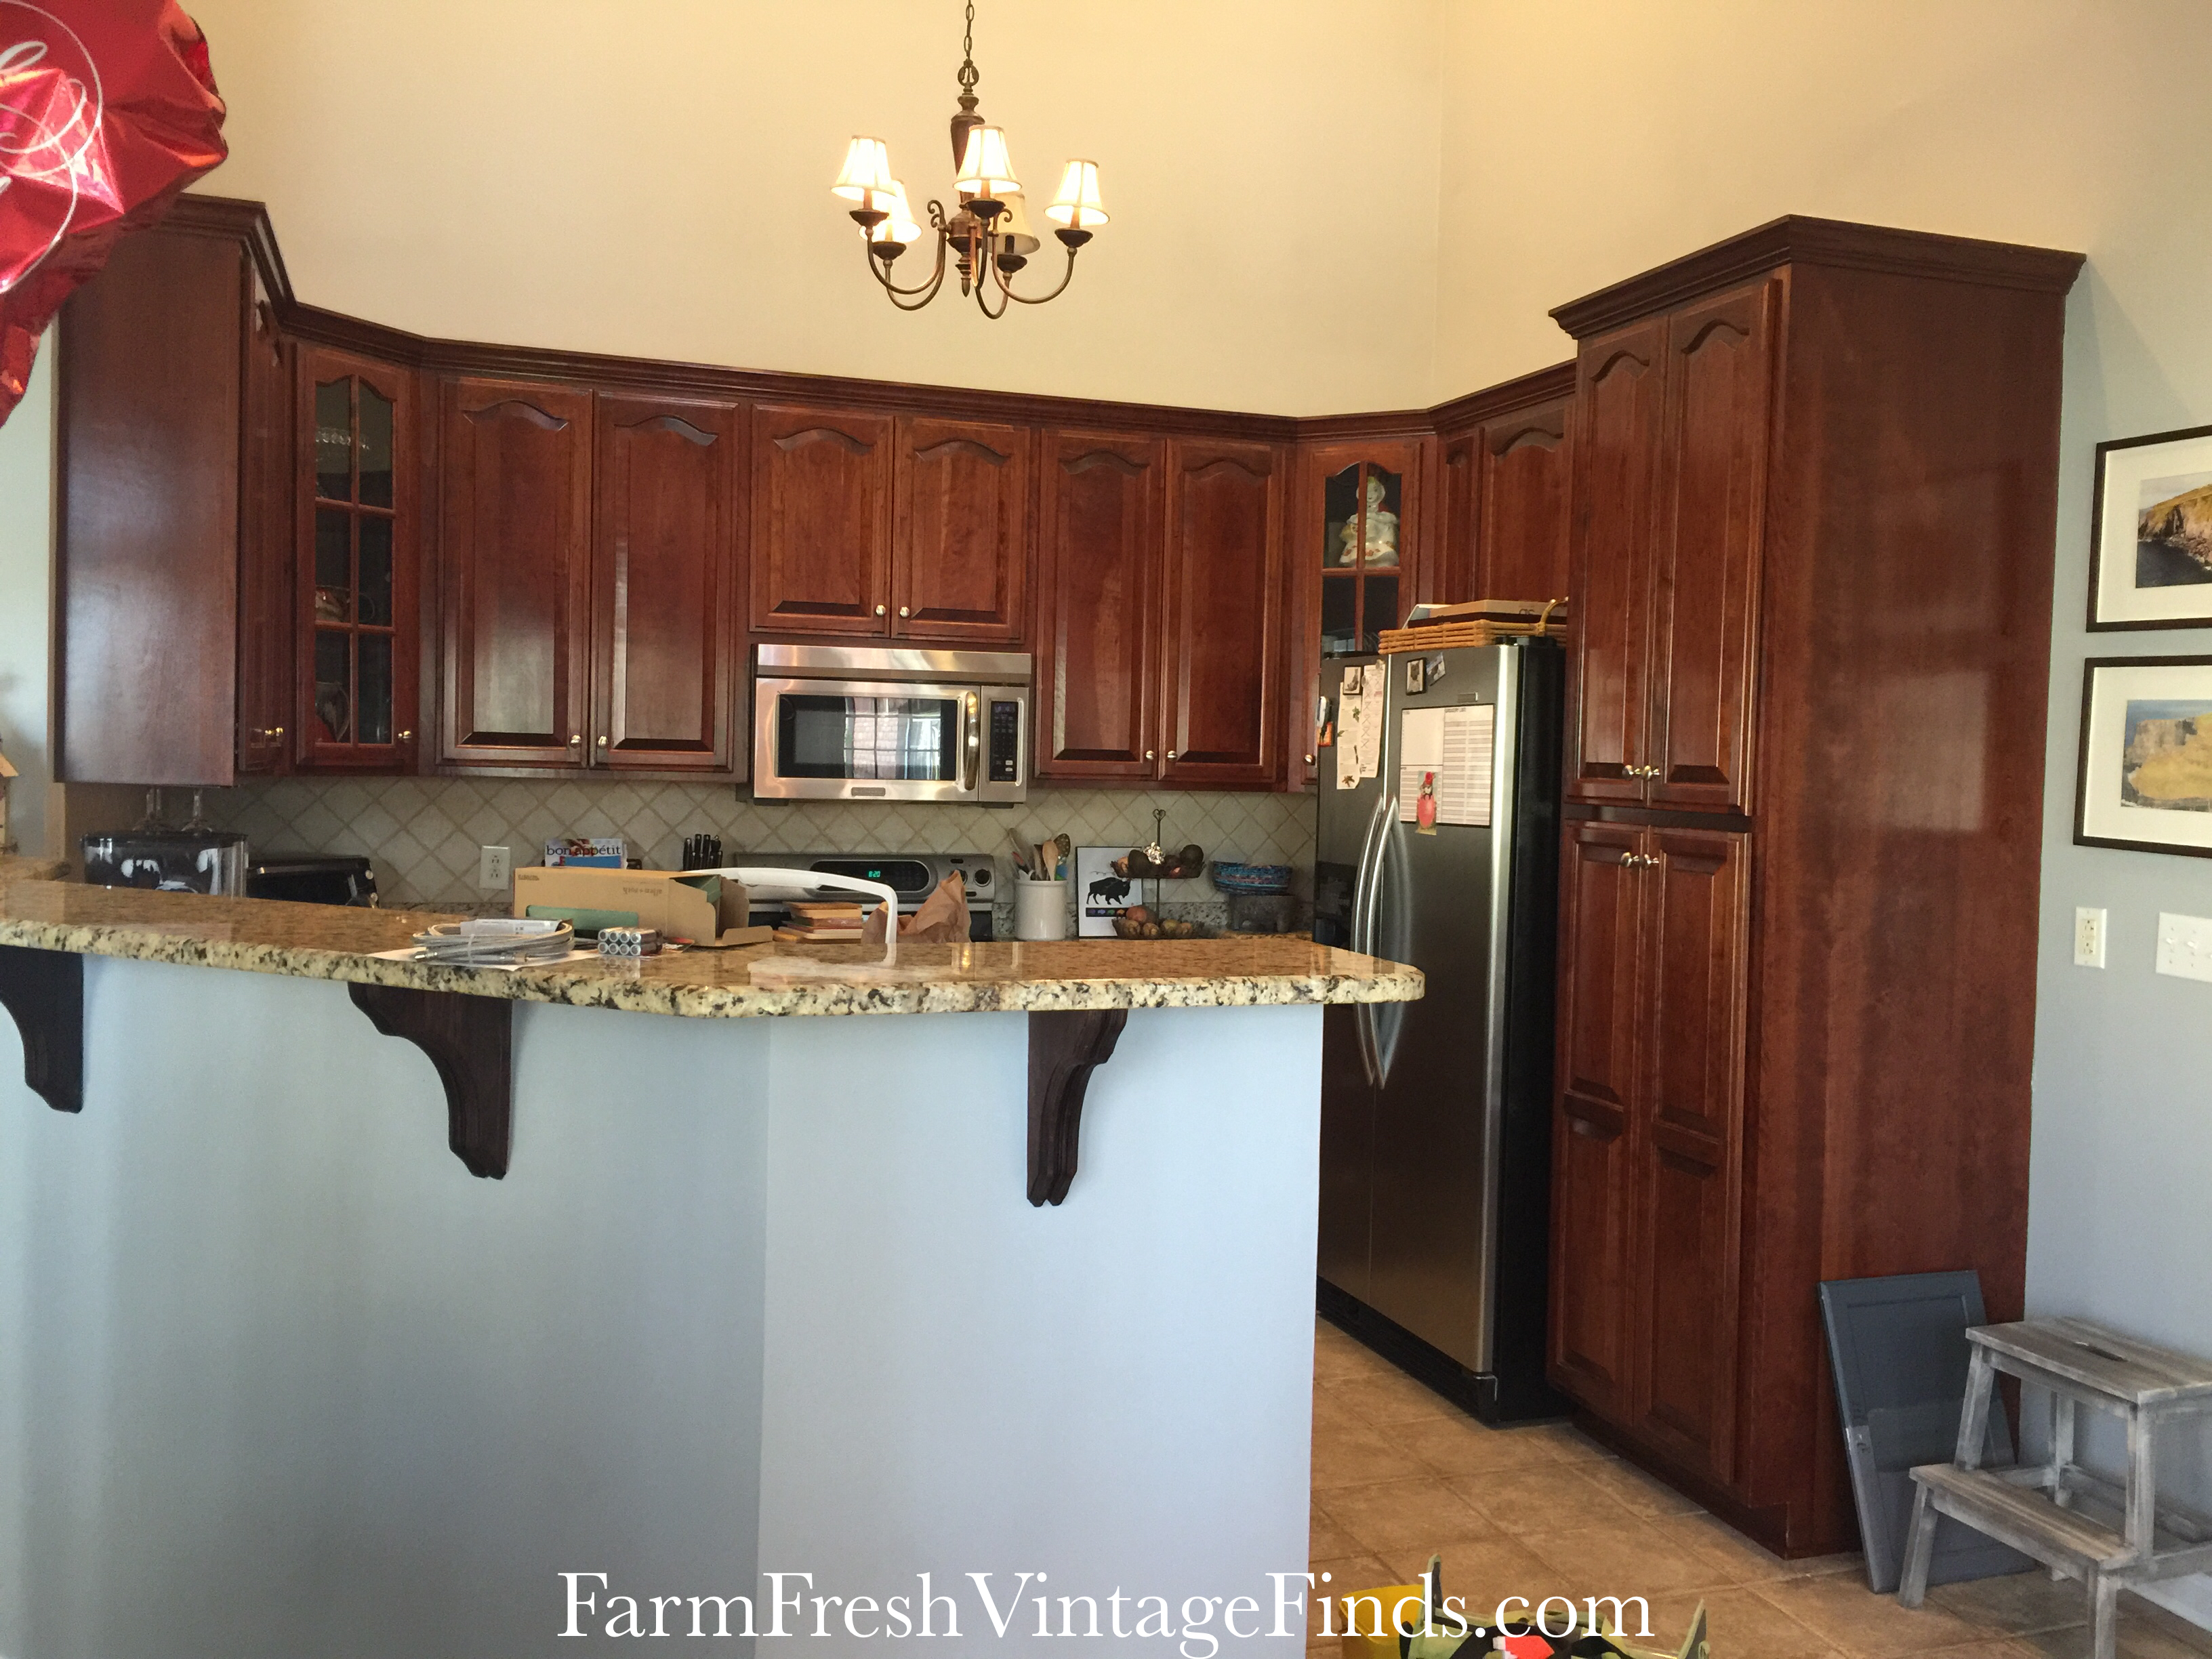 Painting Kitchen Cabinets With General Finishes Milk Paint Farm - What kind of paint for kitchen cabinets